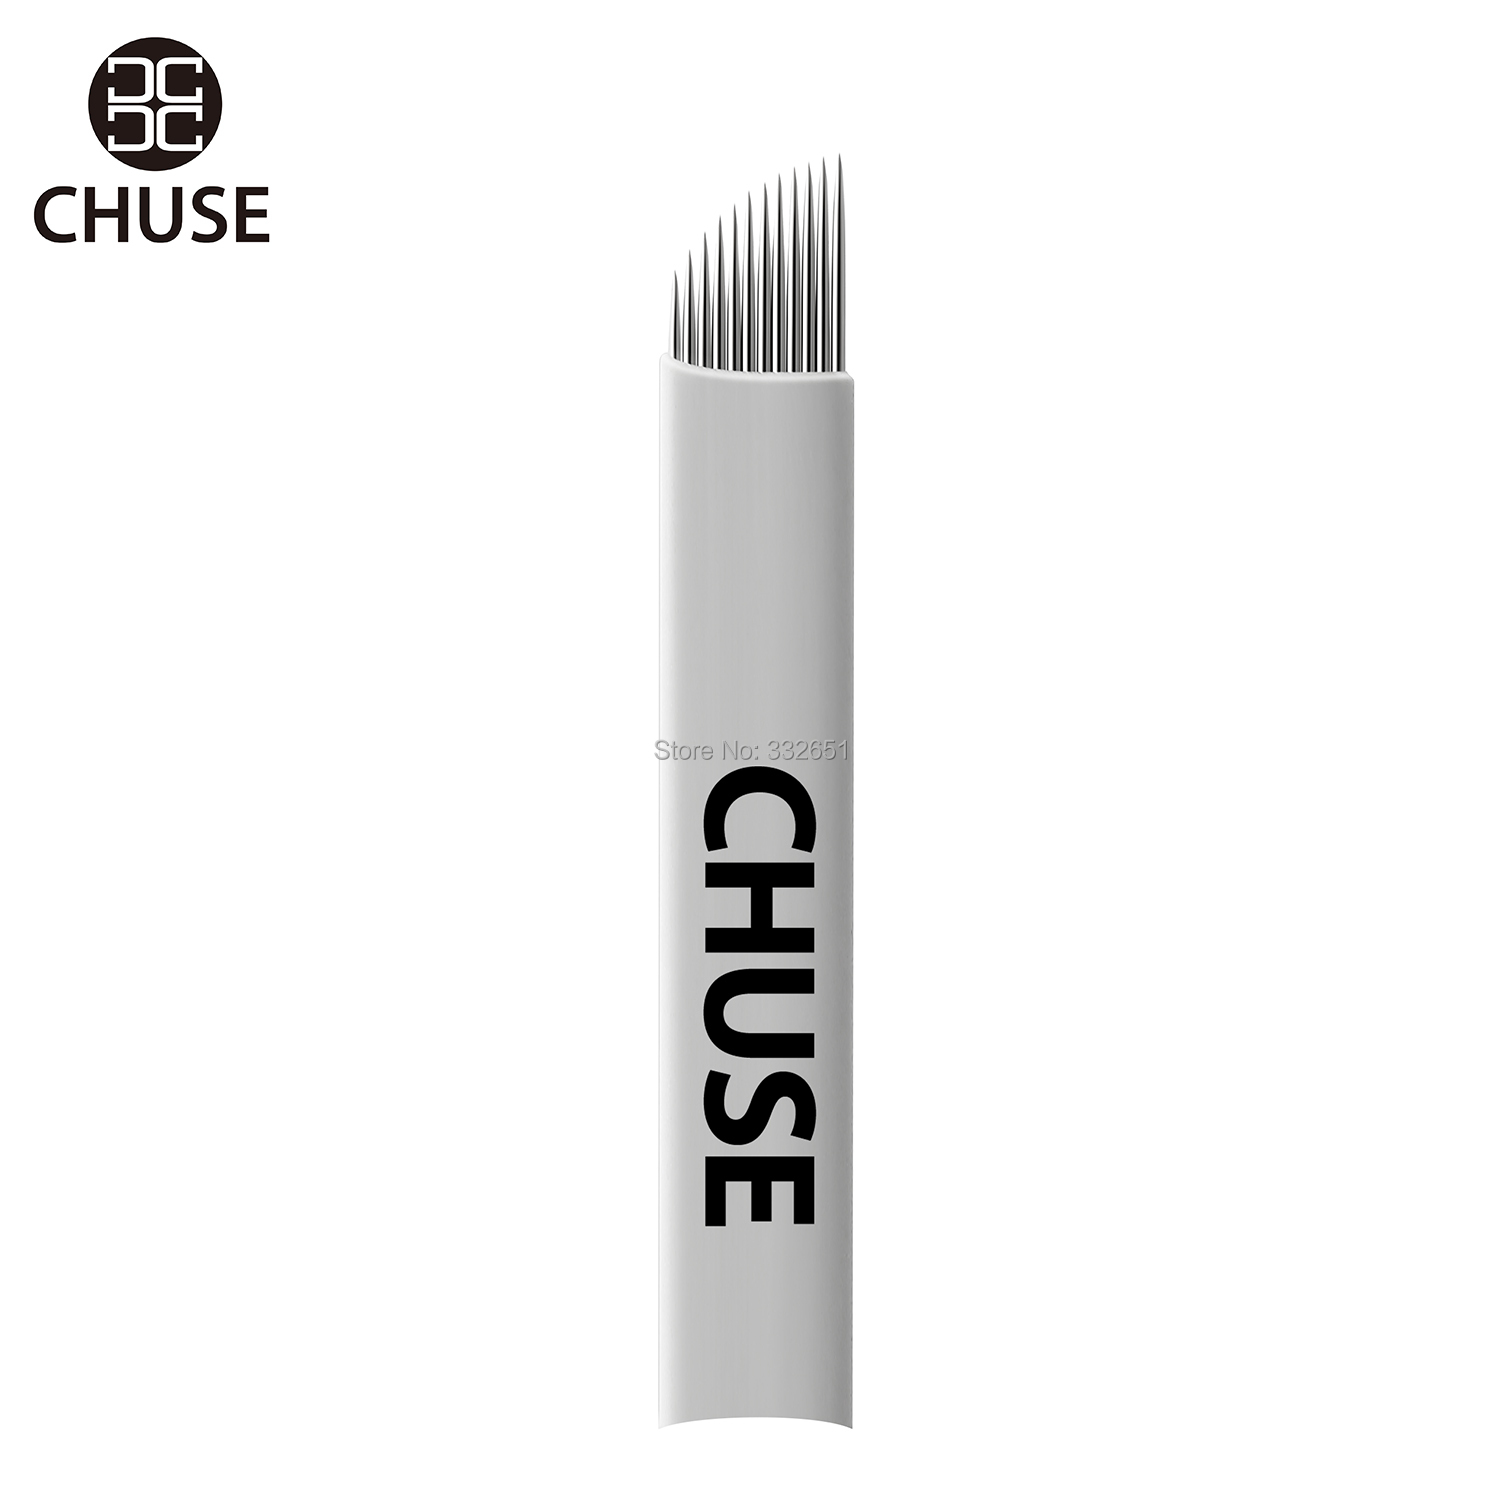 Chuse Permanent Makeup Tattoo Blades S12  For Microbladeing Eyebrow Manual Pens Individual Packed    INK INKS Blades